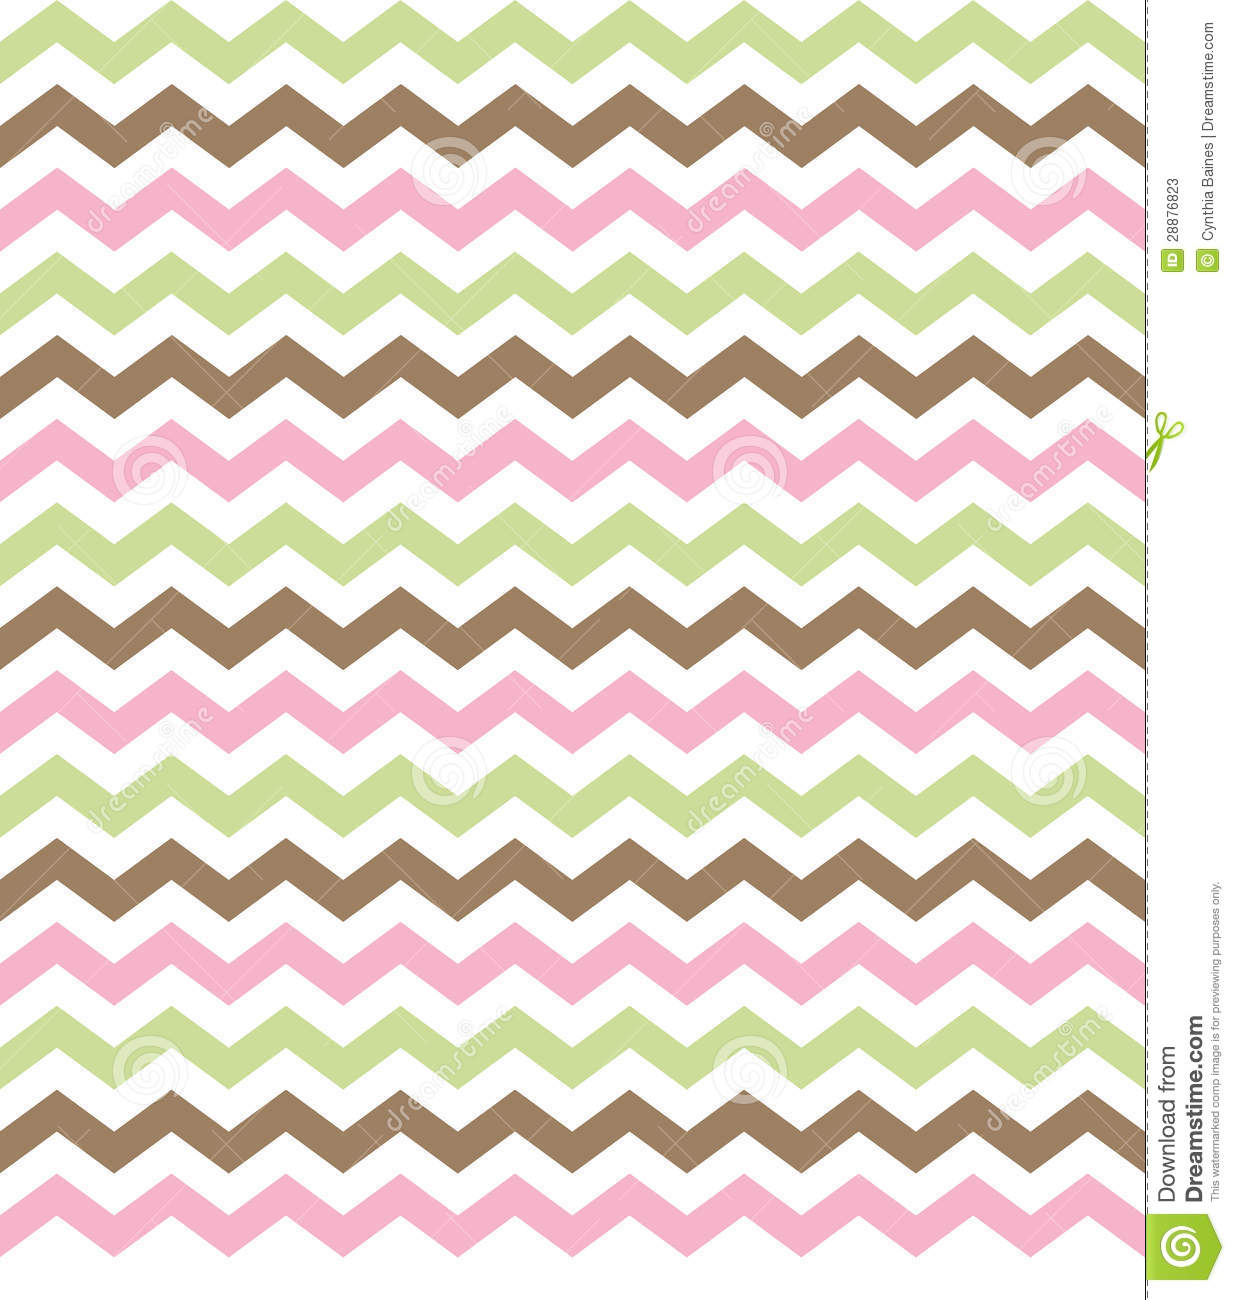 Cute Chevron Background Chevron zig zag pattern tiling 1235x1300